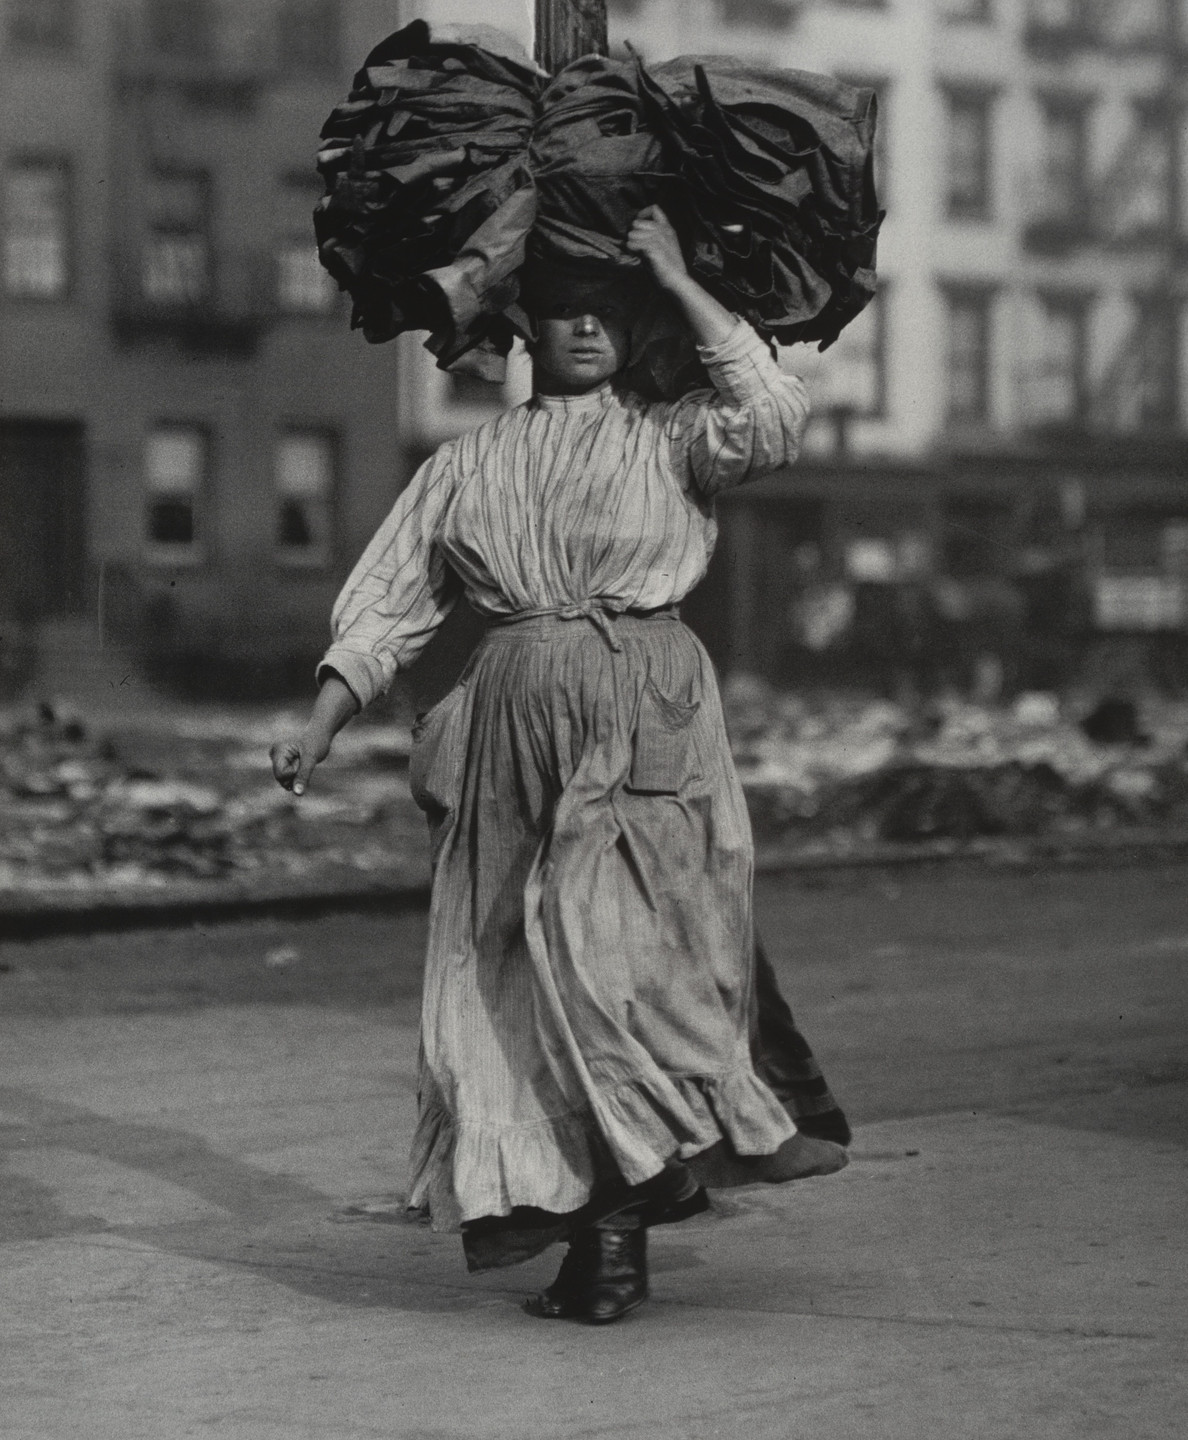 Lewis W. Hine. On the Bowery, New York City. 1909